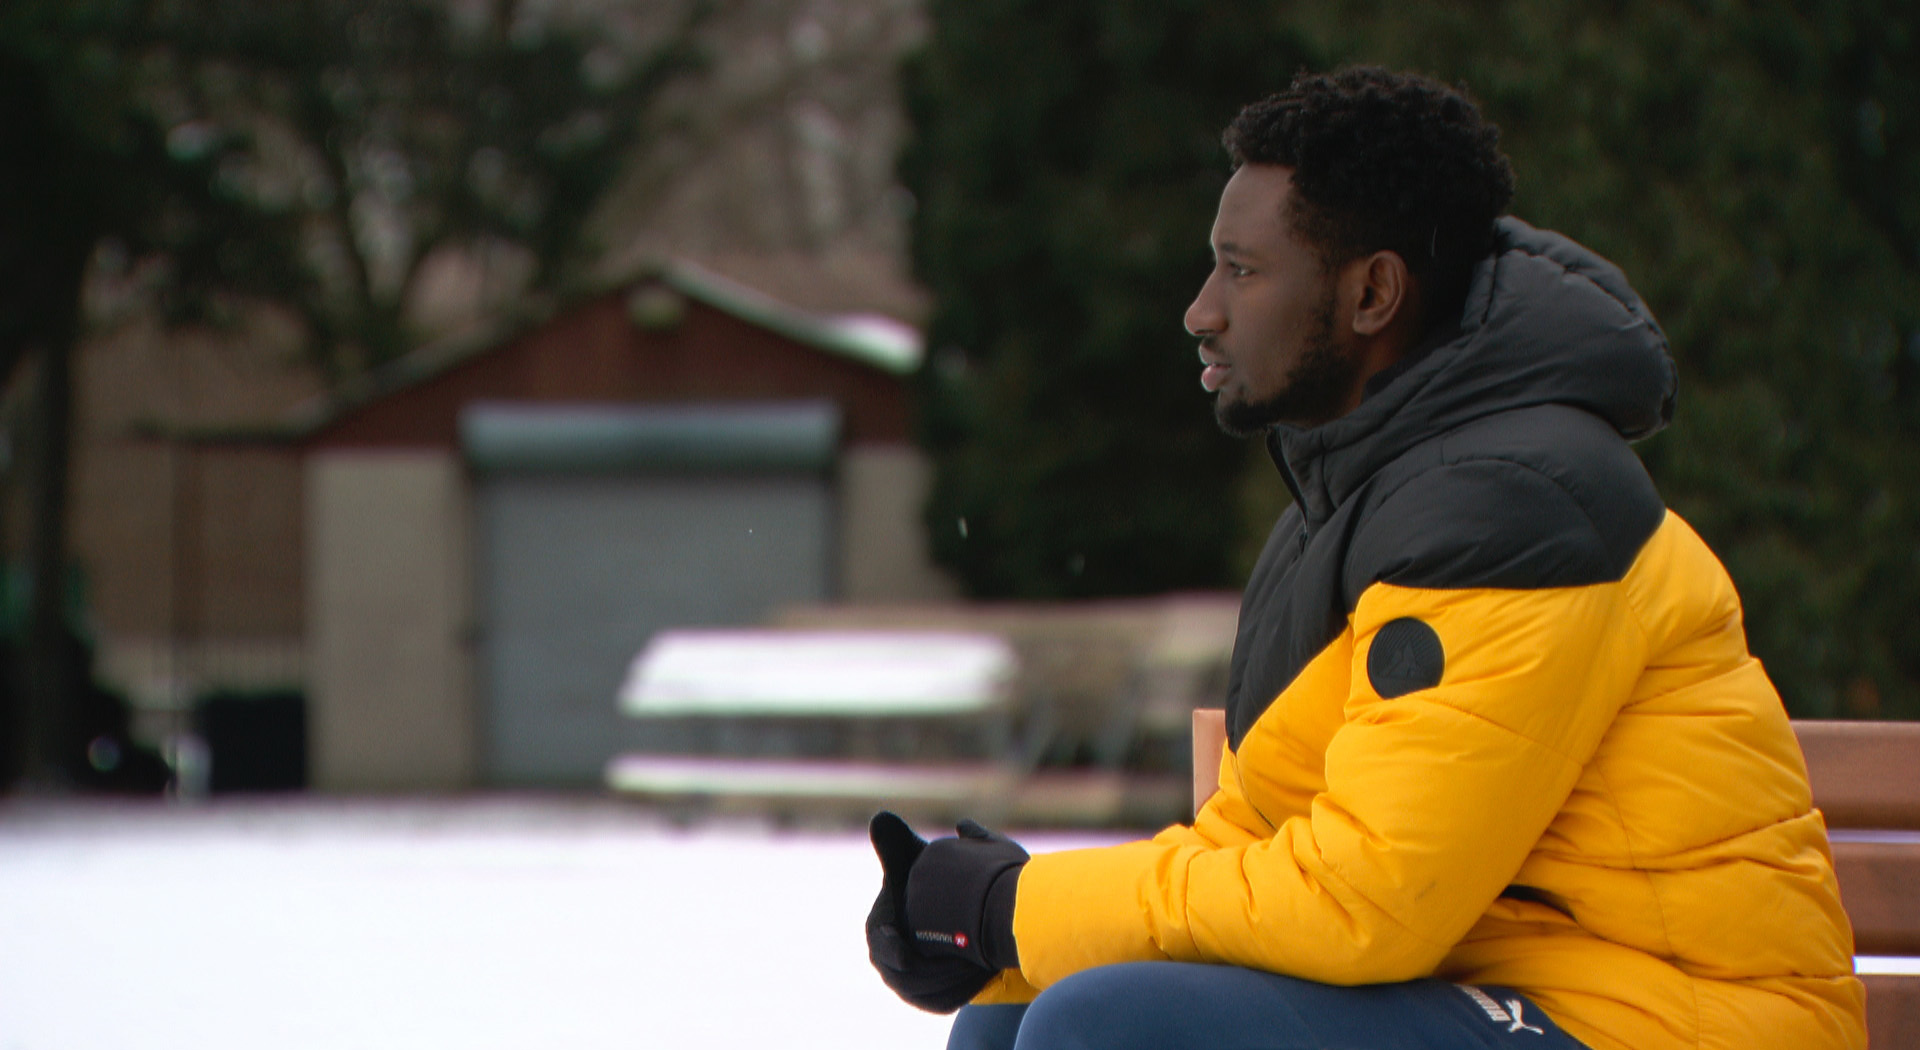 Felix Ndayitwayeko was born in Burundi and lived in a refugee camp in Tanzania before coming to Canada in 2015. (Jon Castell/CBC)